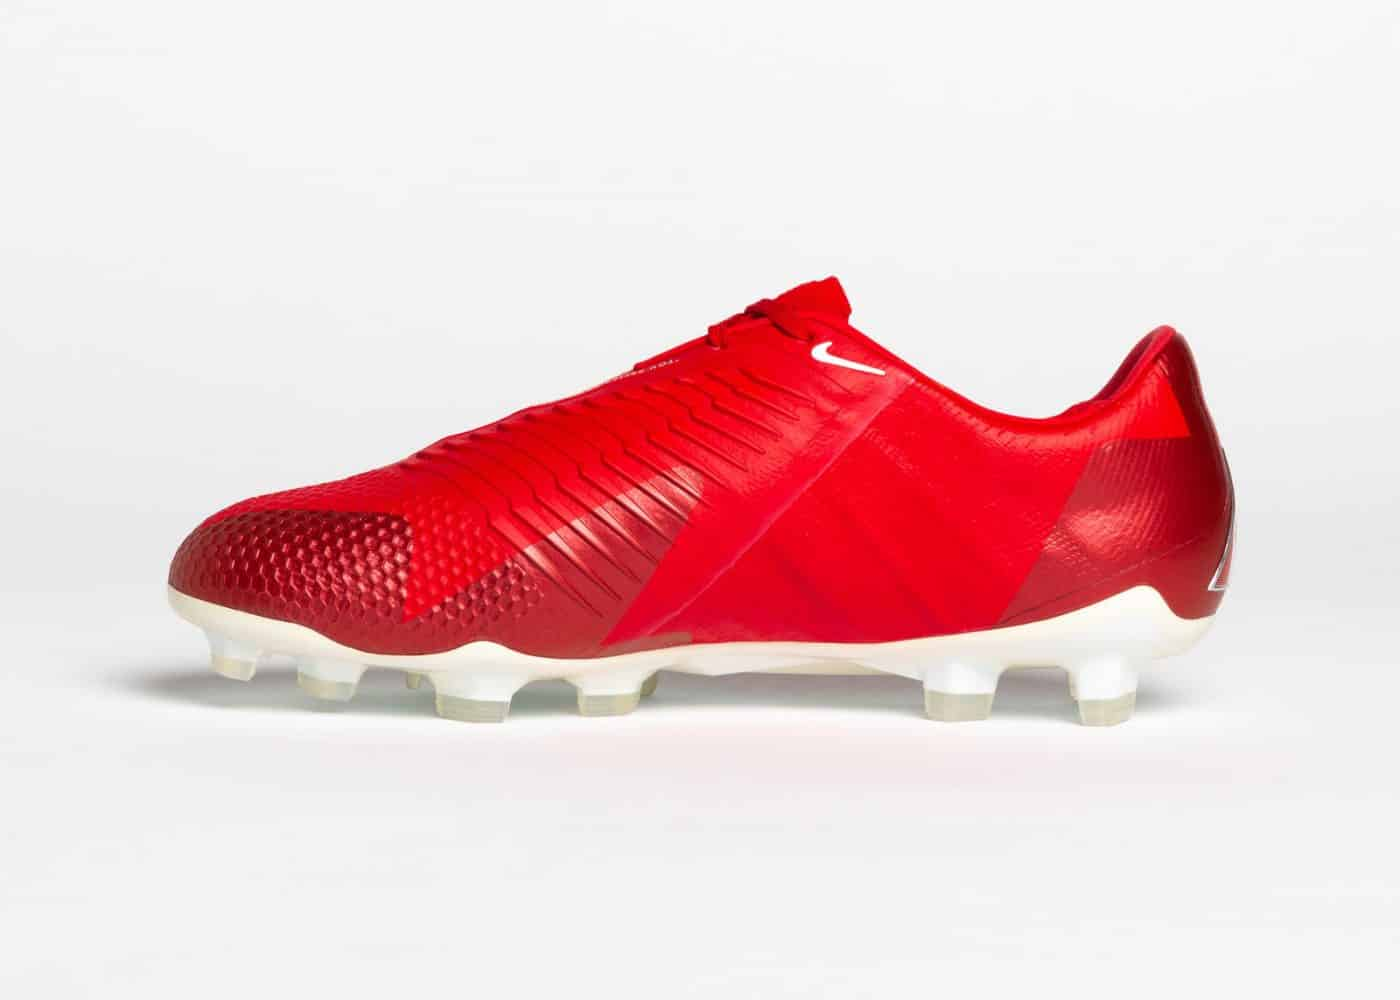 chaussures-foot-nike-phantom-venom-christine-sinclair-record-buts-13